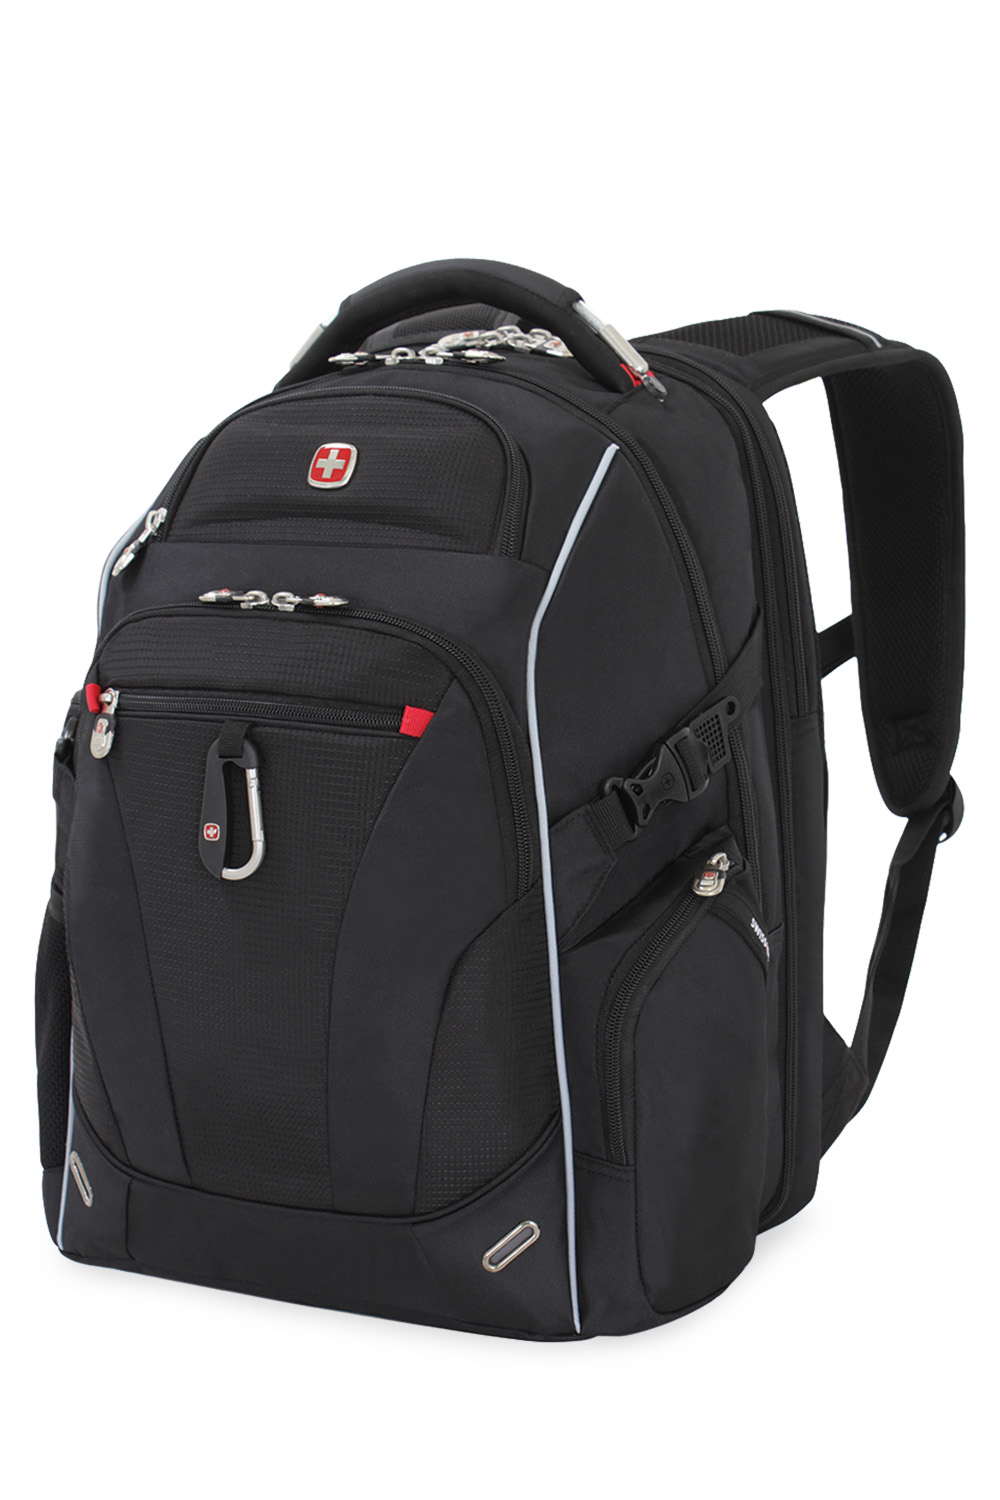 60261305fb swissgear-6752-scansmart-laptop-backpack-black-side 4.jpg